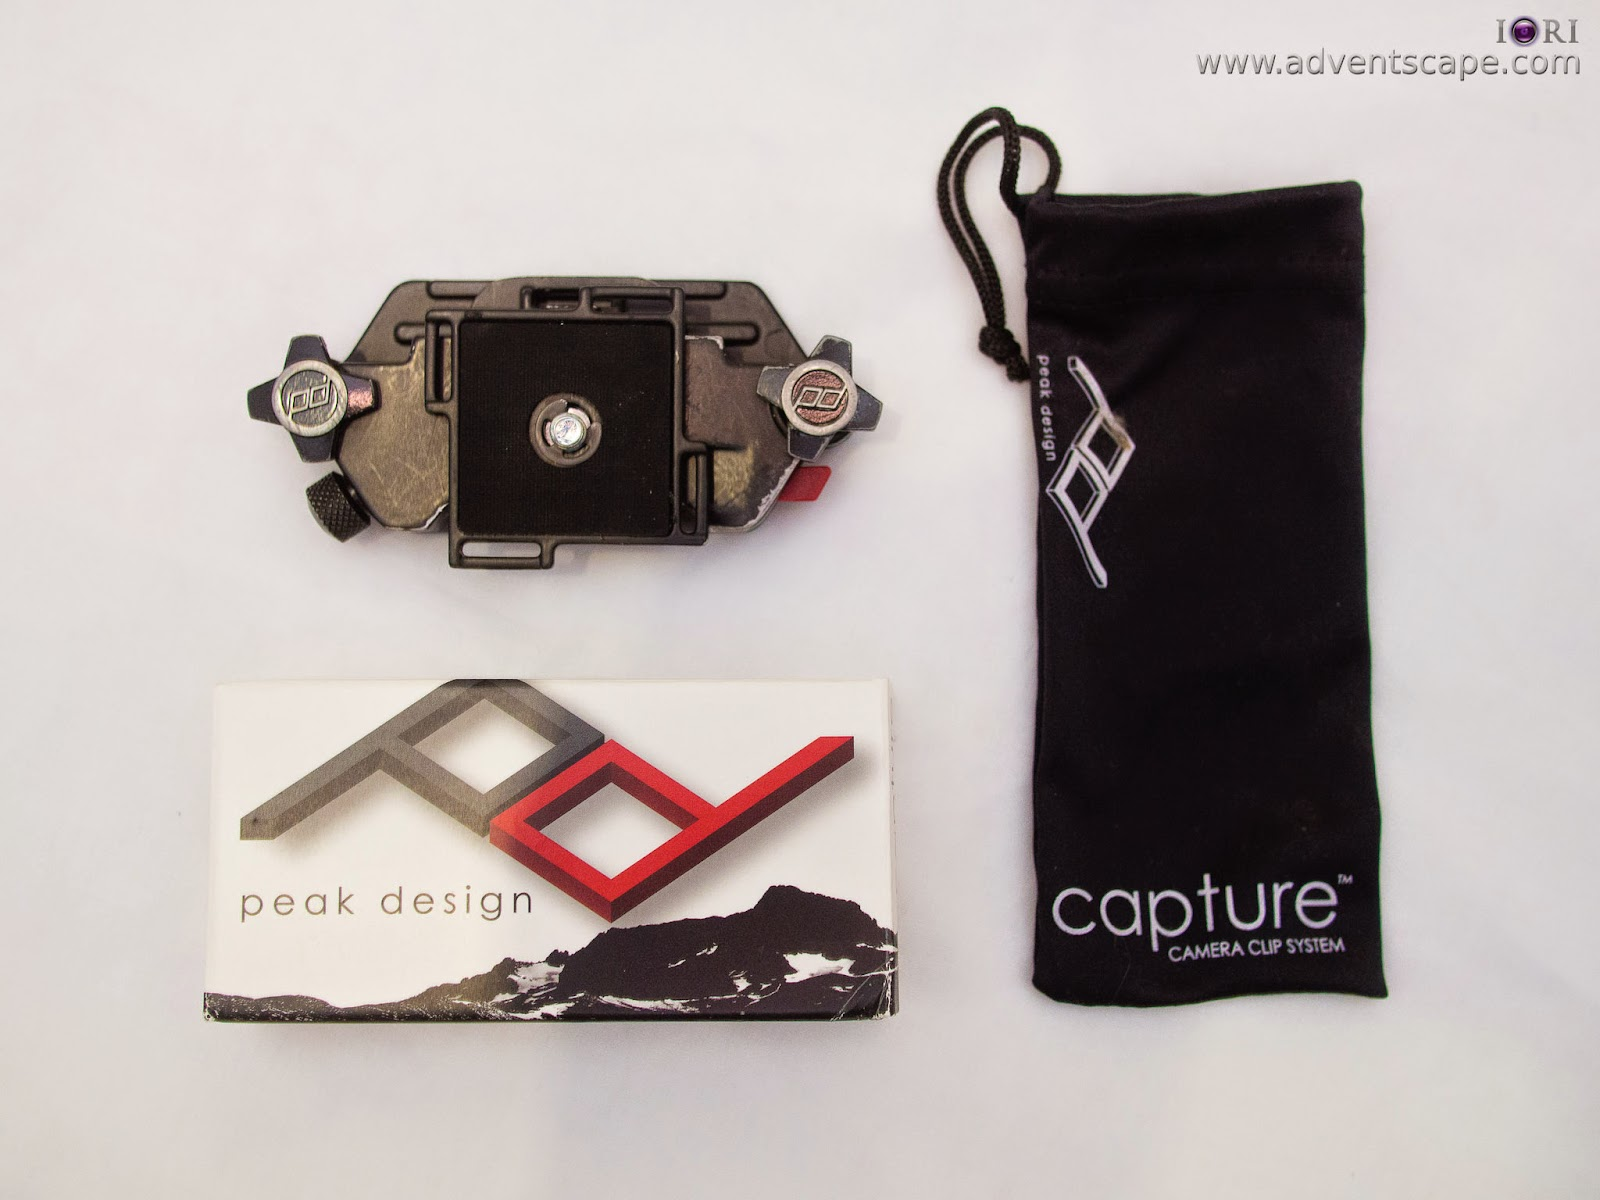 Philip Avellana, iori, adventscape, Peak Design, Capture Camera Clip System, Capture, Clip System, mount, Arca Swiss, unboxing